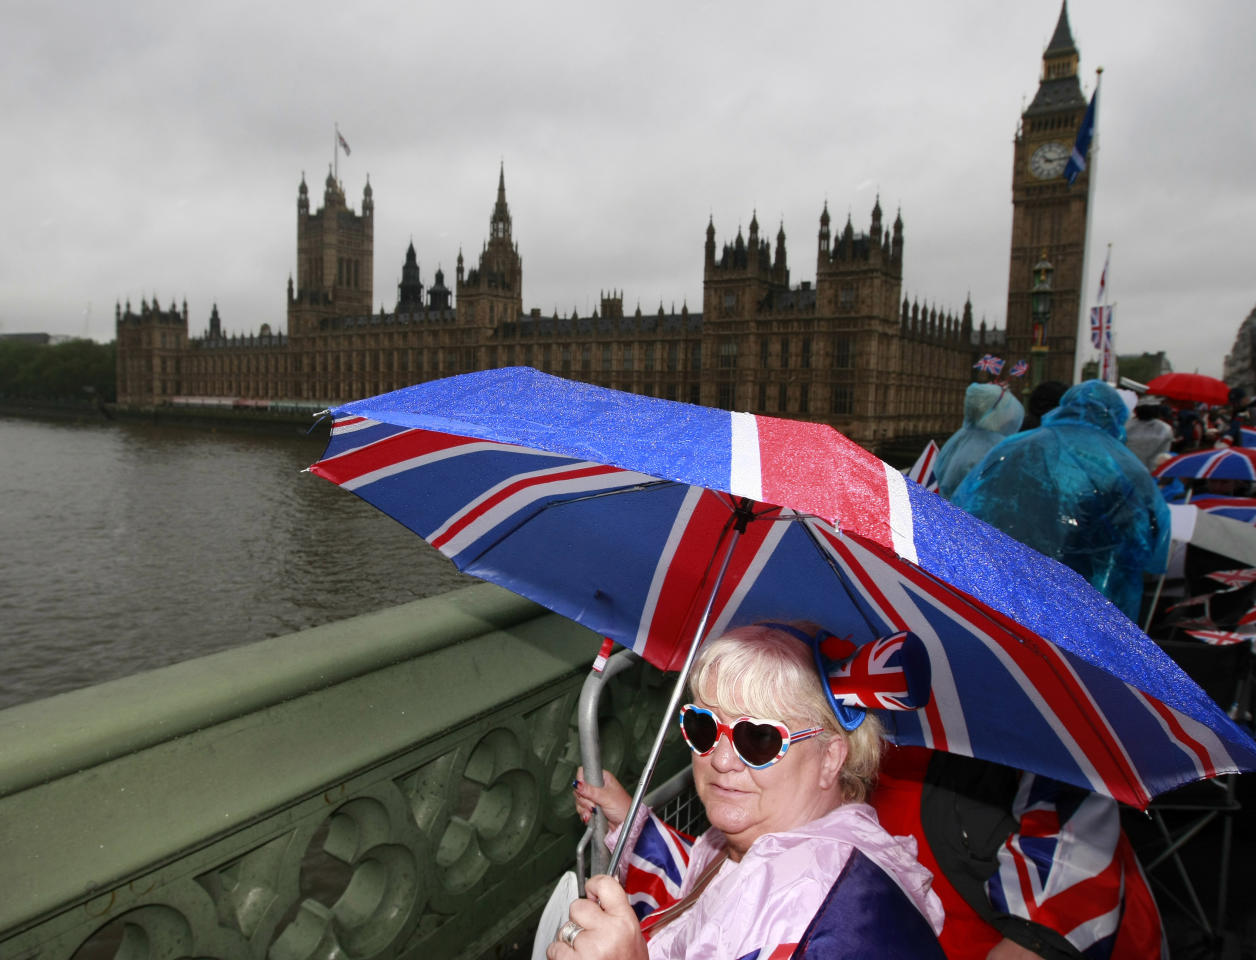 Sue Ridley waits on Westminster Bridge for the Royal Barge to pass the House of Commons and the Big Ben clocktower during the Thames Diamond Jubilee River Pageant in London, Sunday, June 3, 2012. More than 1,000 boats were to sail down the Thames on Sunday in a flotilla tribute to Queen Elizabeth II's 60 years on the throne that organizers are calling the biggest gathering on the river for 350 years. Despite cool, drizzly weather, hundreds of thousands of people are expected to line the riverbanks in London, feting the British monarch whose longevity has given her the status of the nation's favorite grandmother. (AP Photo/Tim Hales)